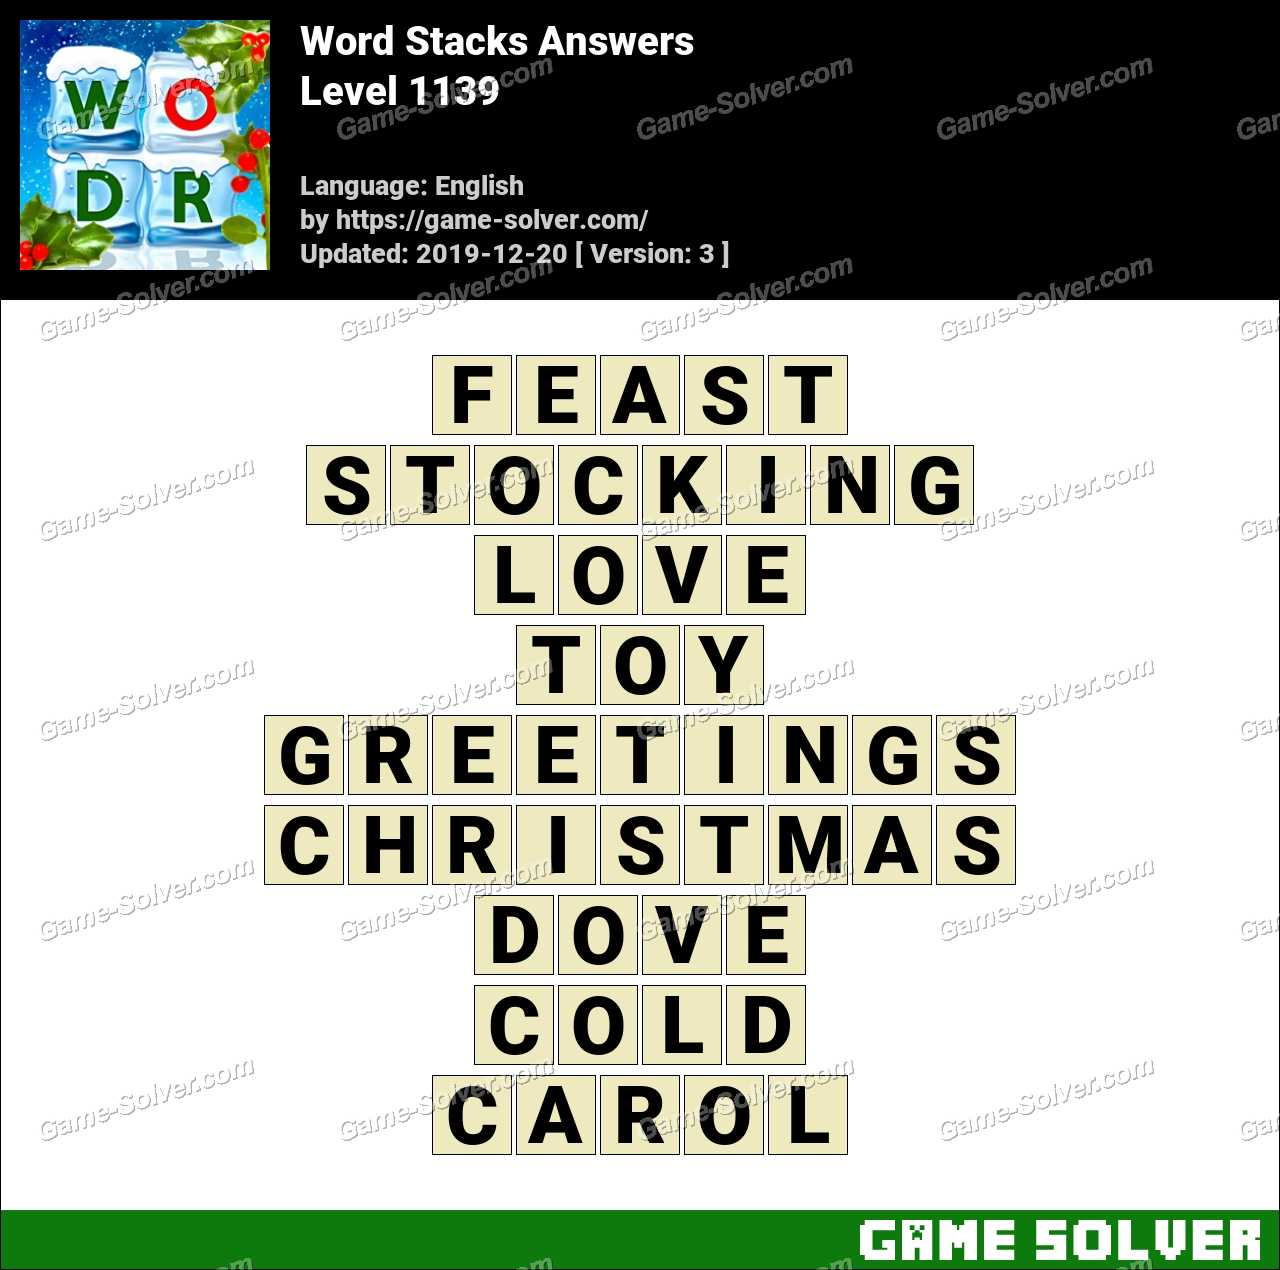 Word Stacks Level 1139 Answers